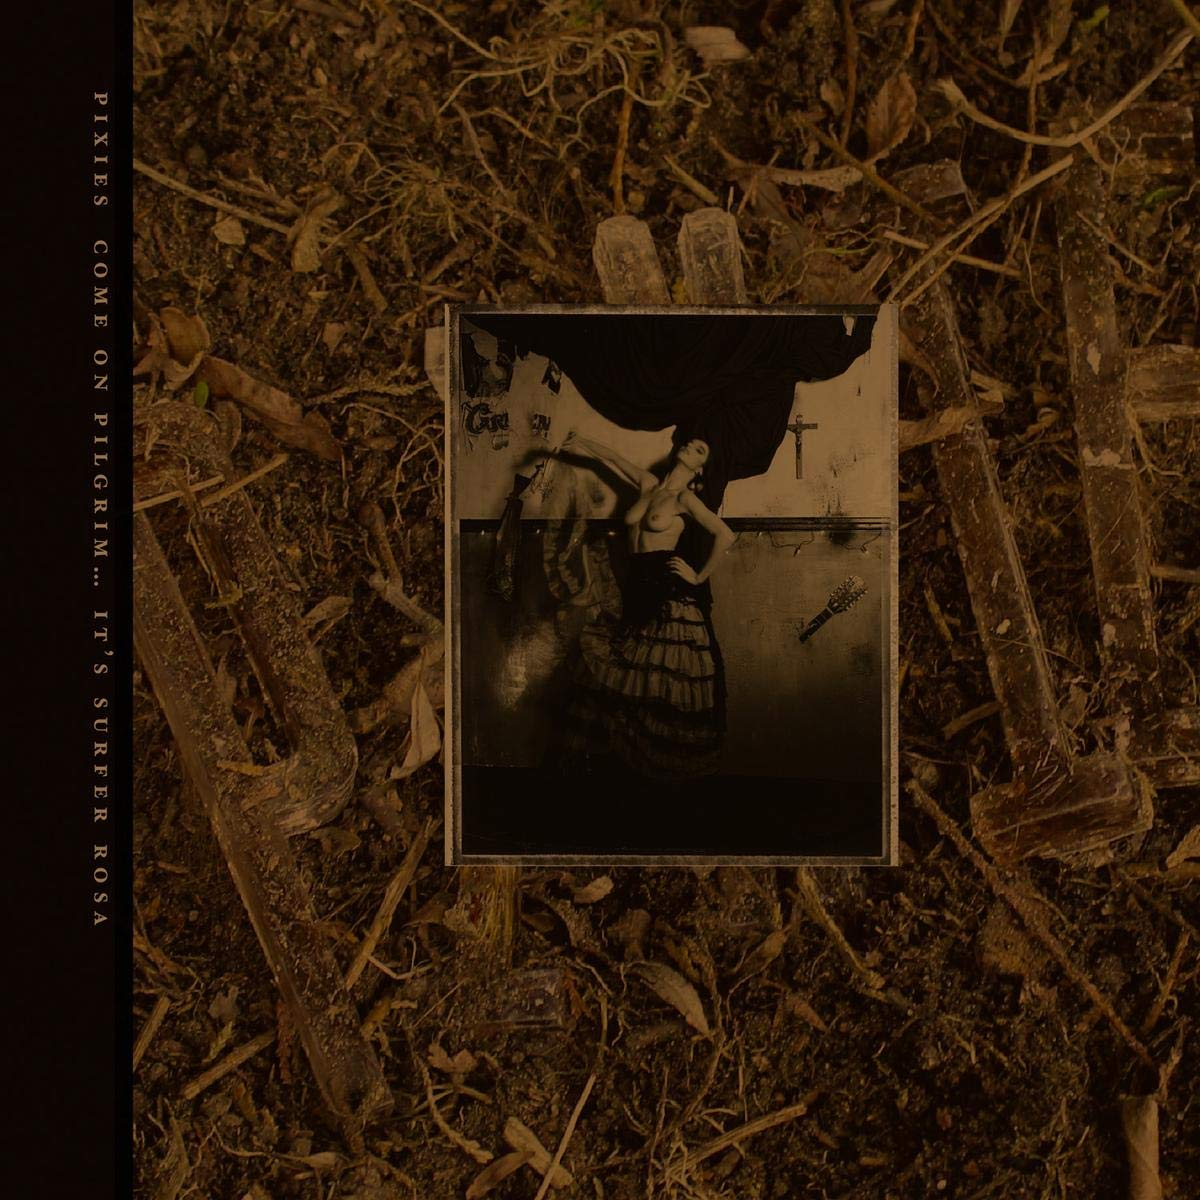 Pixies - Come On Pilgrim... It's Surfer Rosa (30th Anniversary Edition) (2018) [FLAC] Download